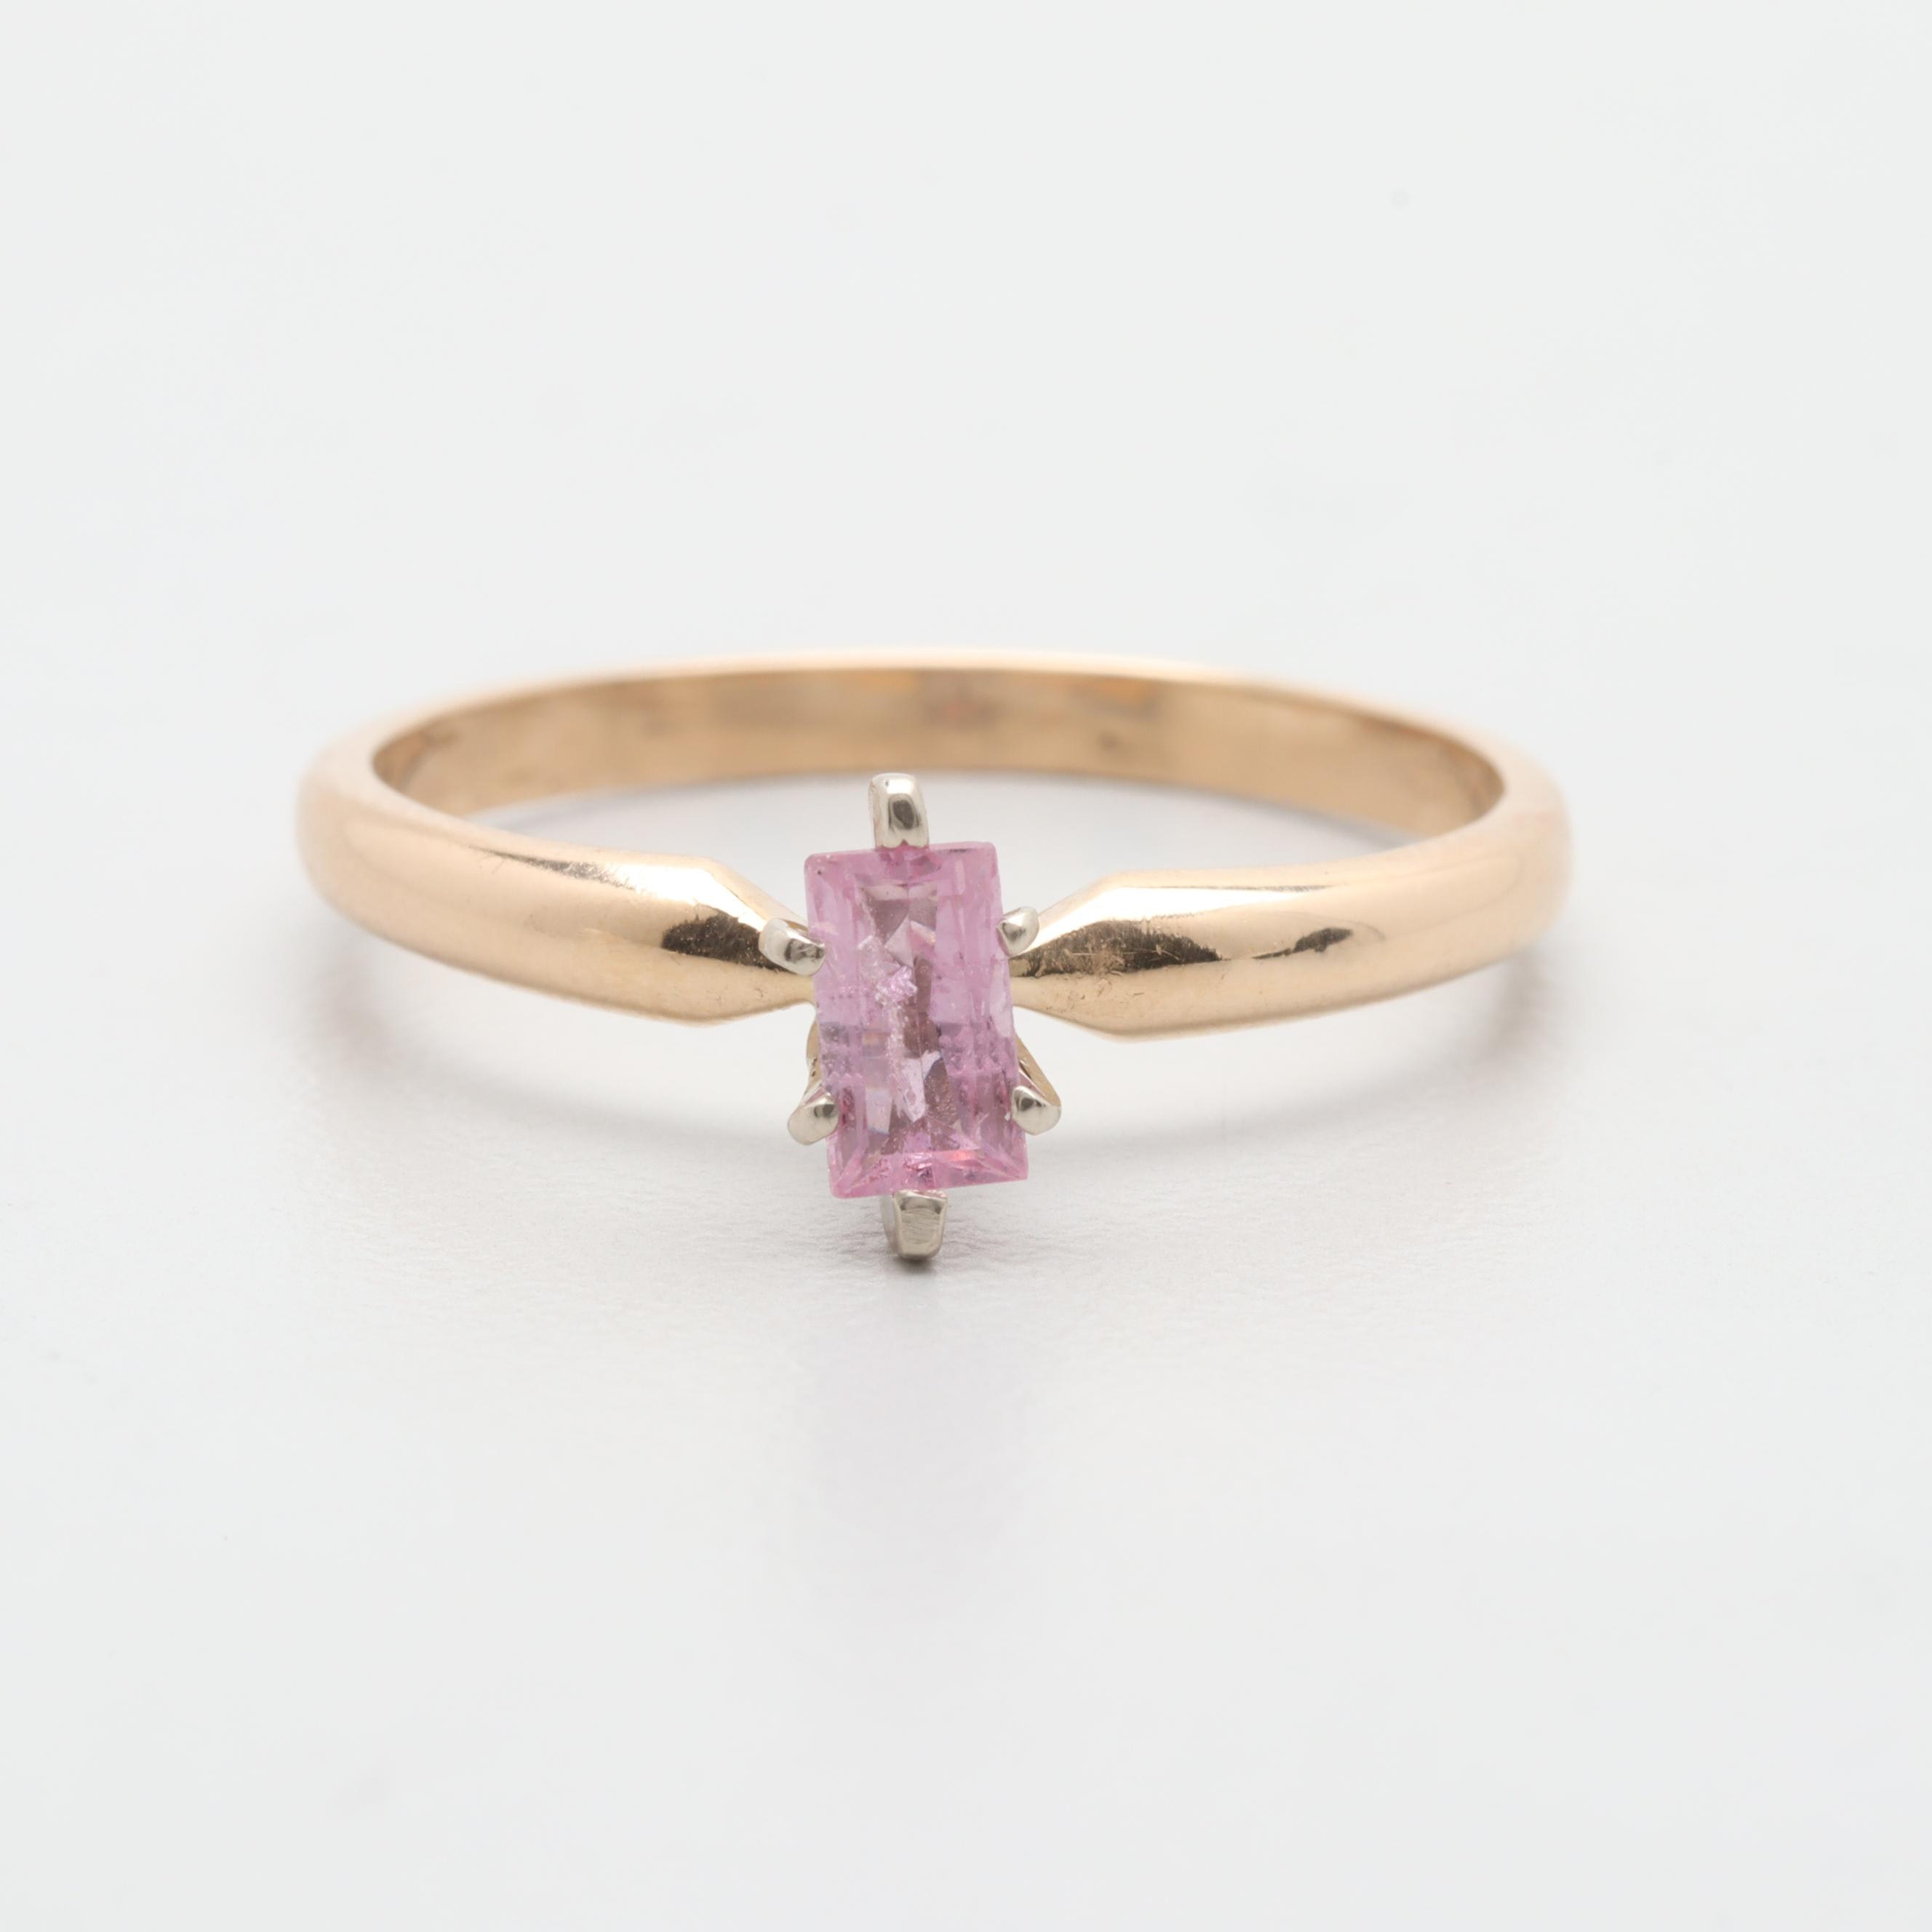 14K Yellow Gold Pink Sapphire Ring